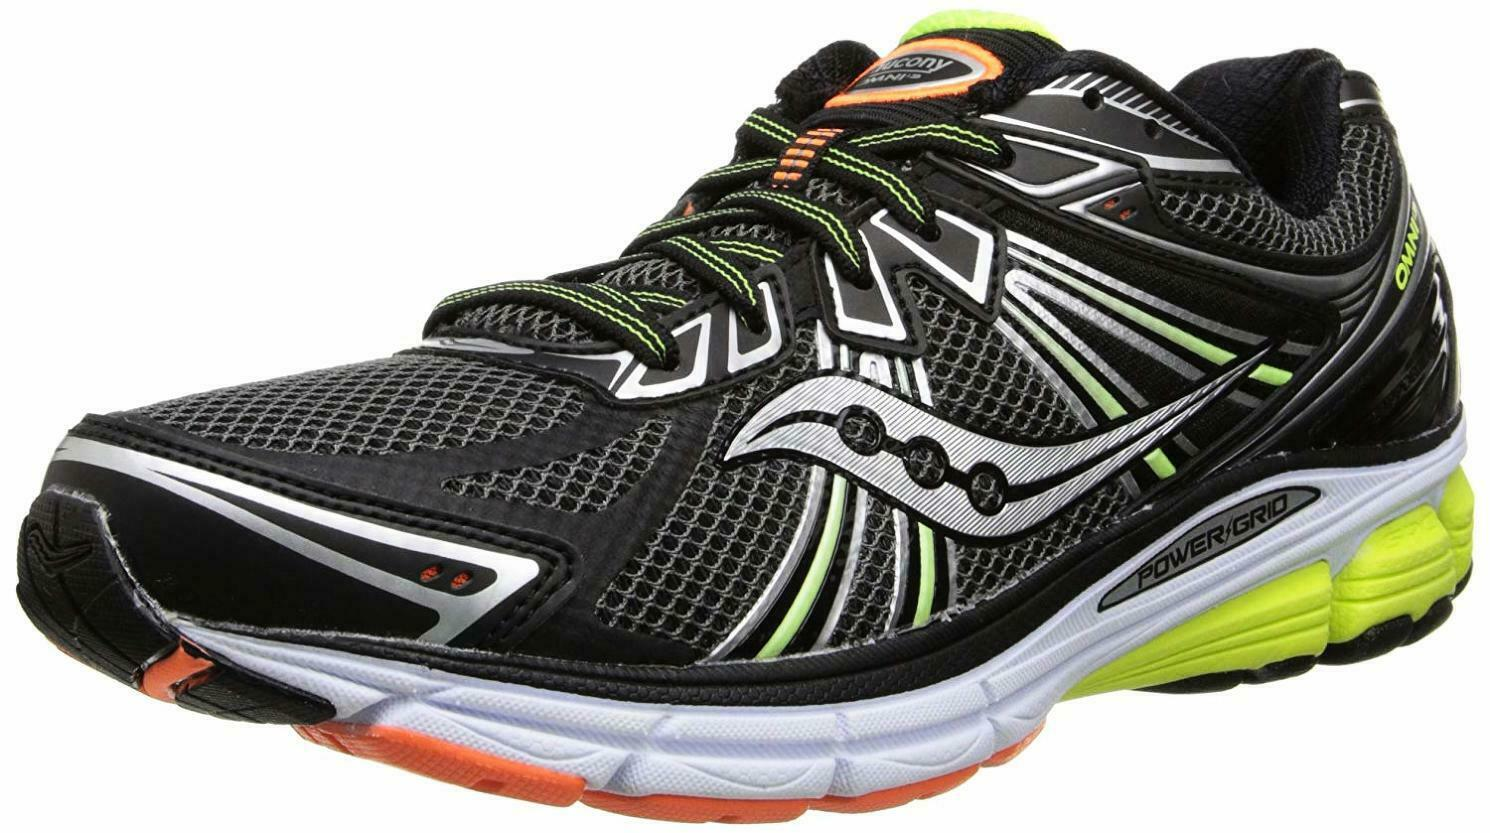 81d06d0ee Men s Omni Running shoes 13 Saucony nshmyh6307-Athletic Shoes ...